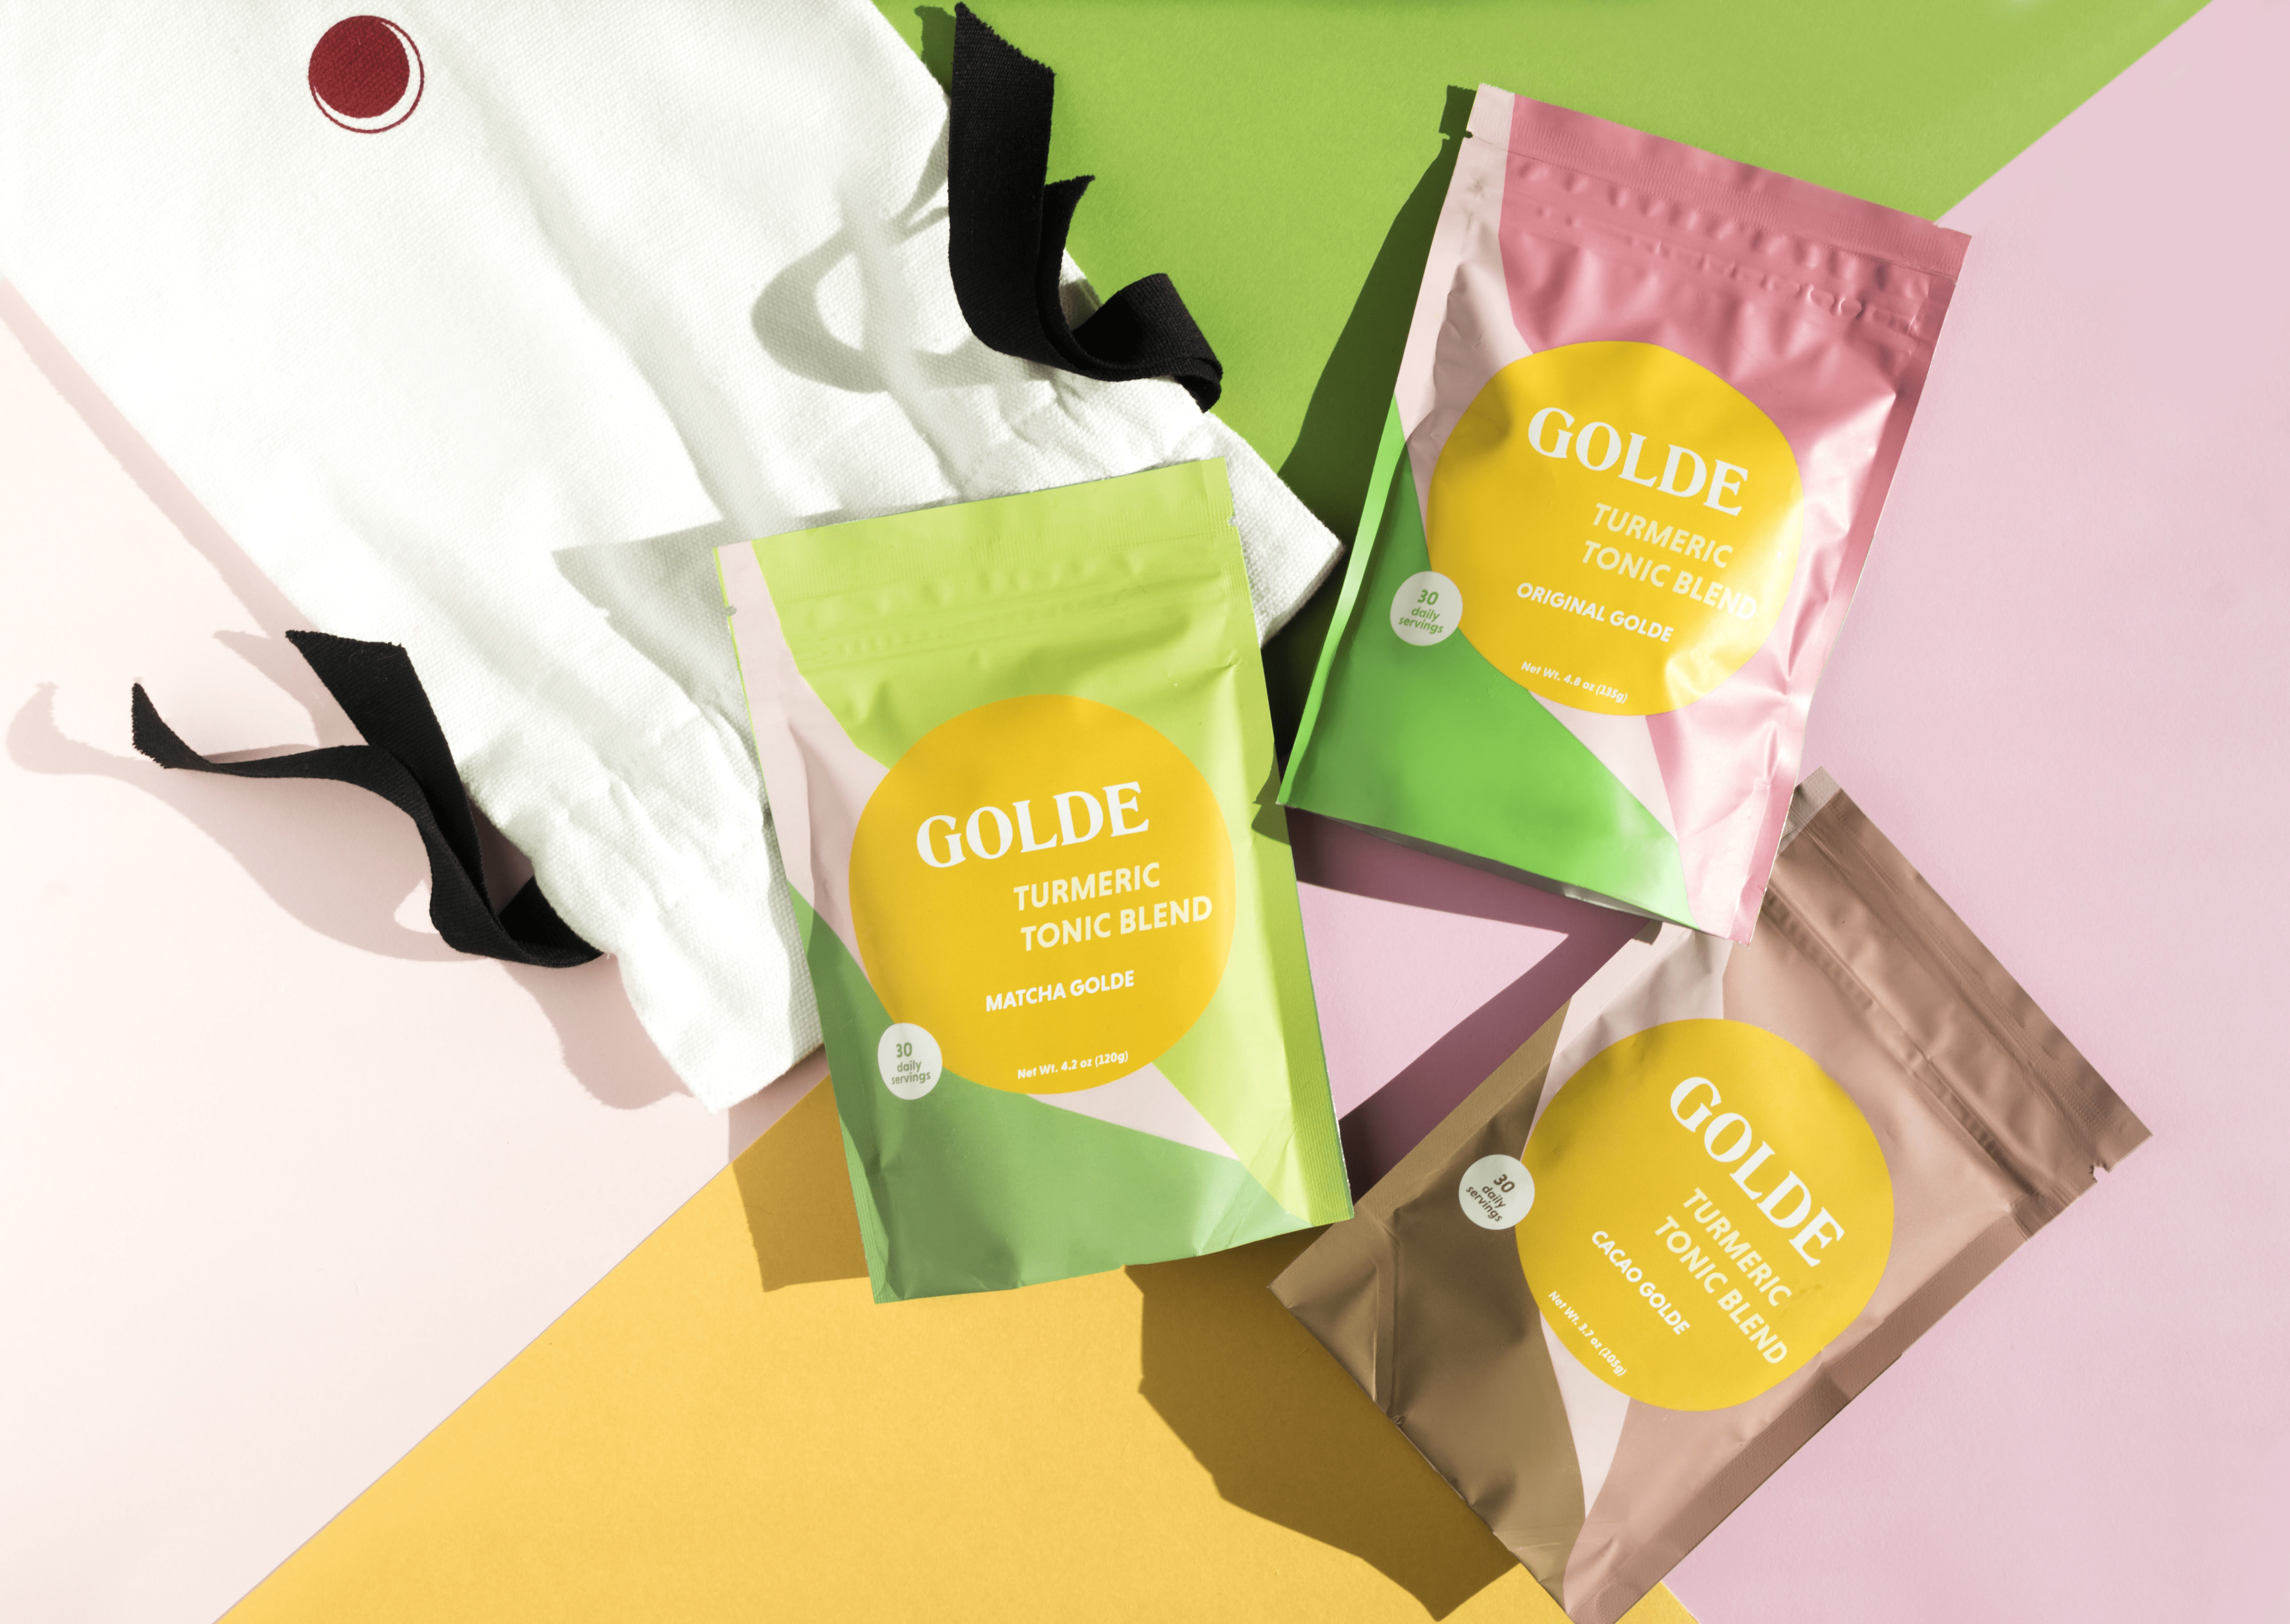 Beauty Heroes Limited Edition Wellness Discovery Box by Golde Available Now + Full Spoilers!